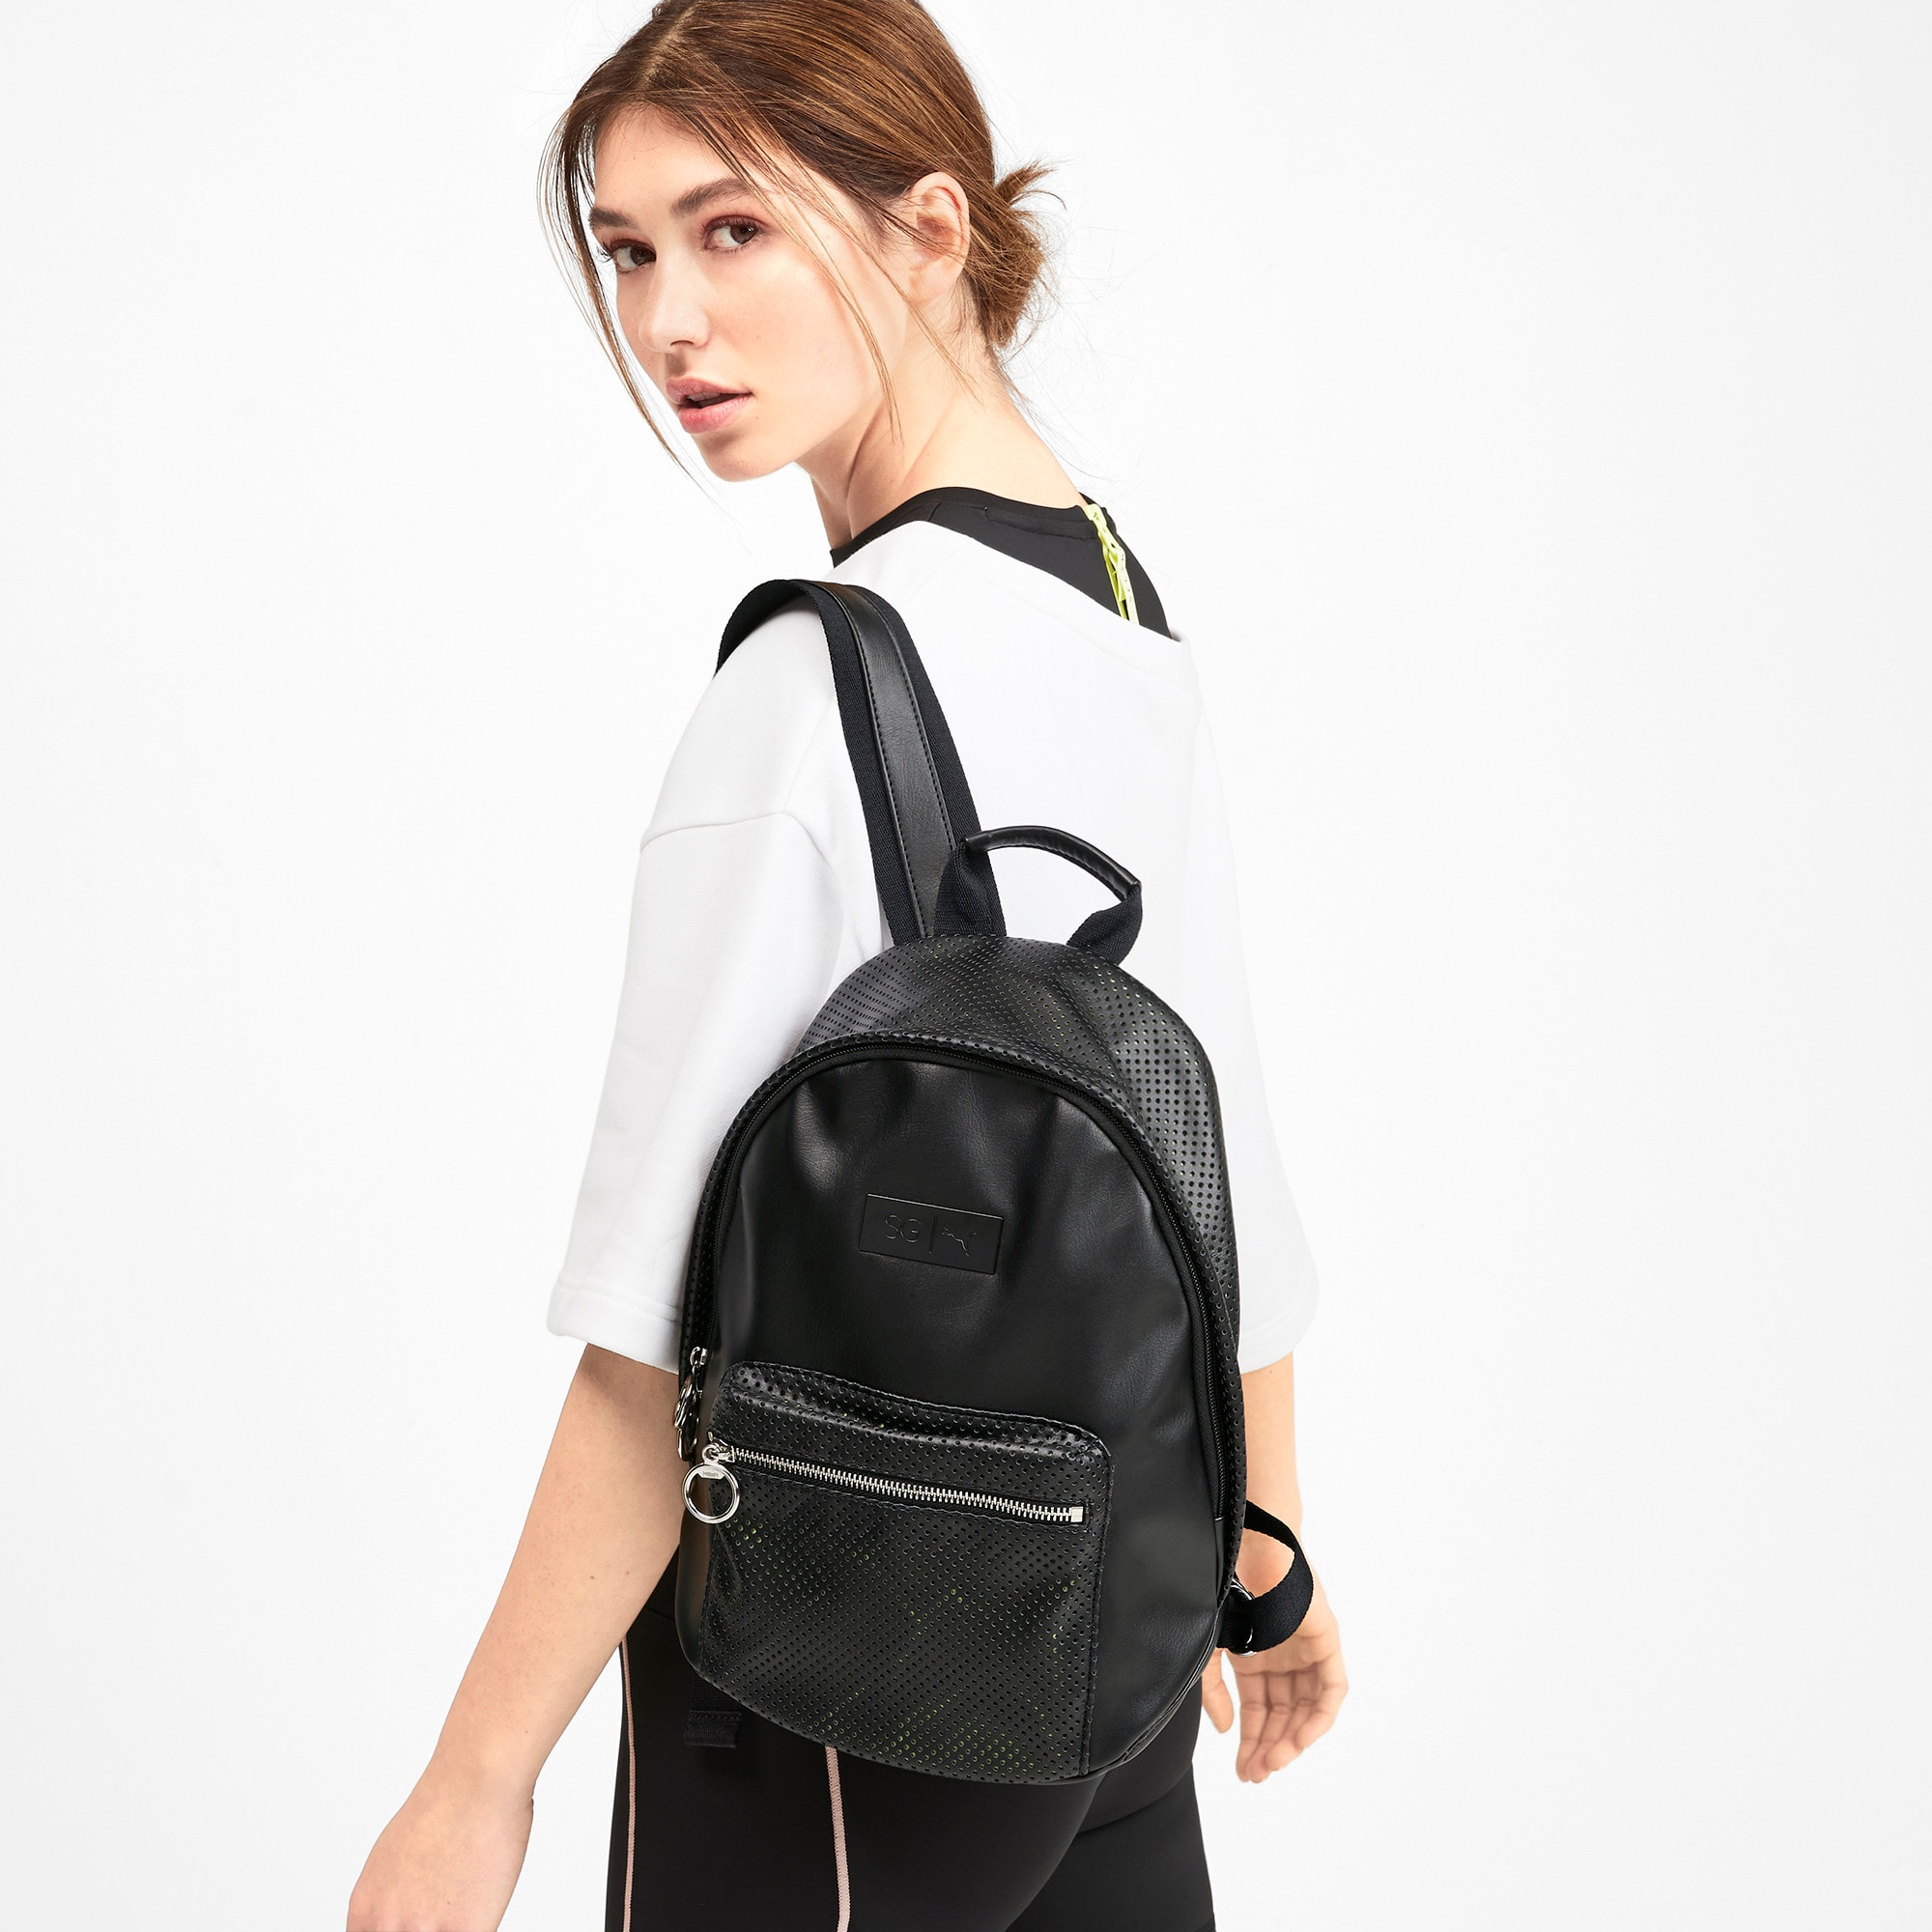 Thumbnail 2 of SG x PUMA Style Backpack, Puma Black, medium